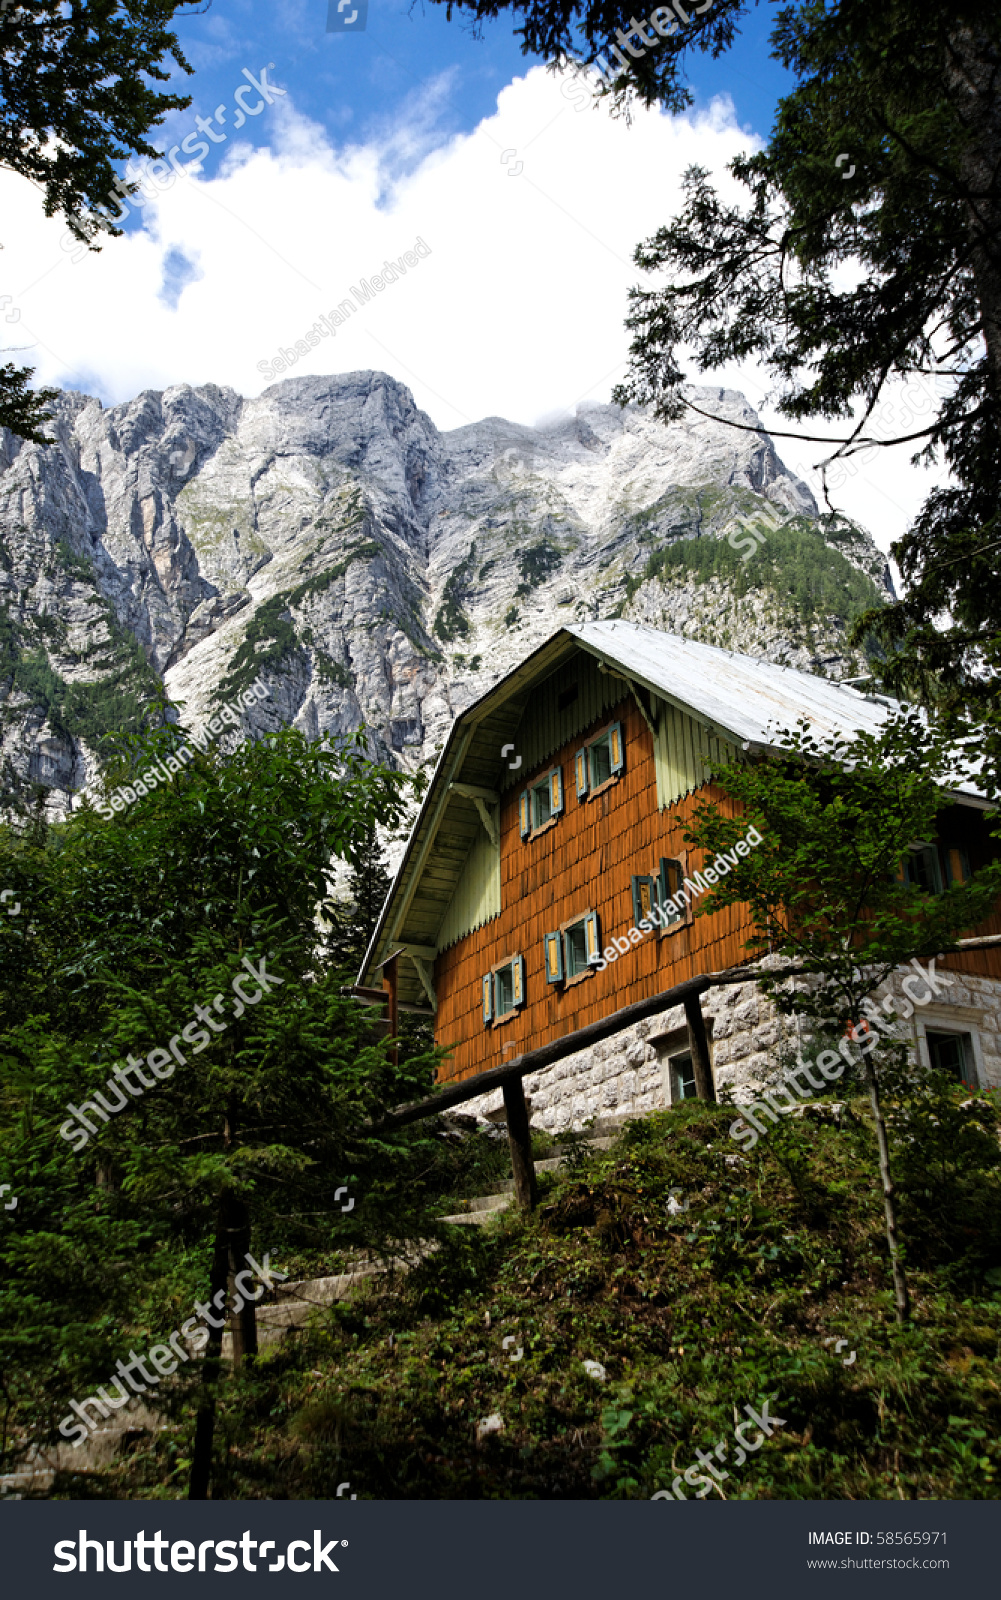 Cottage high in mountains stock photo 58565971 shutterstock for Cottage in the mountains